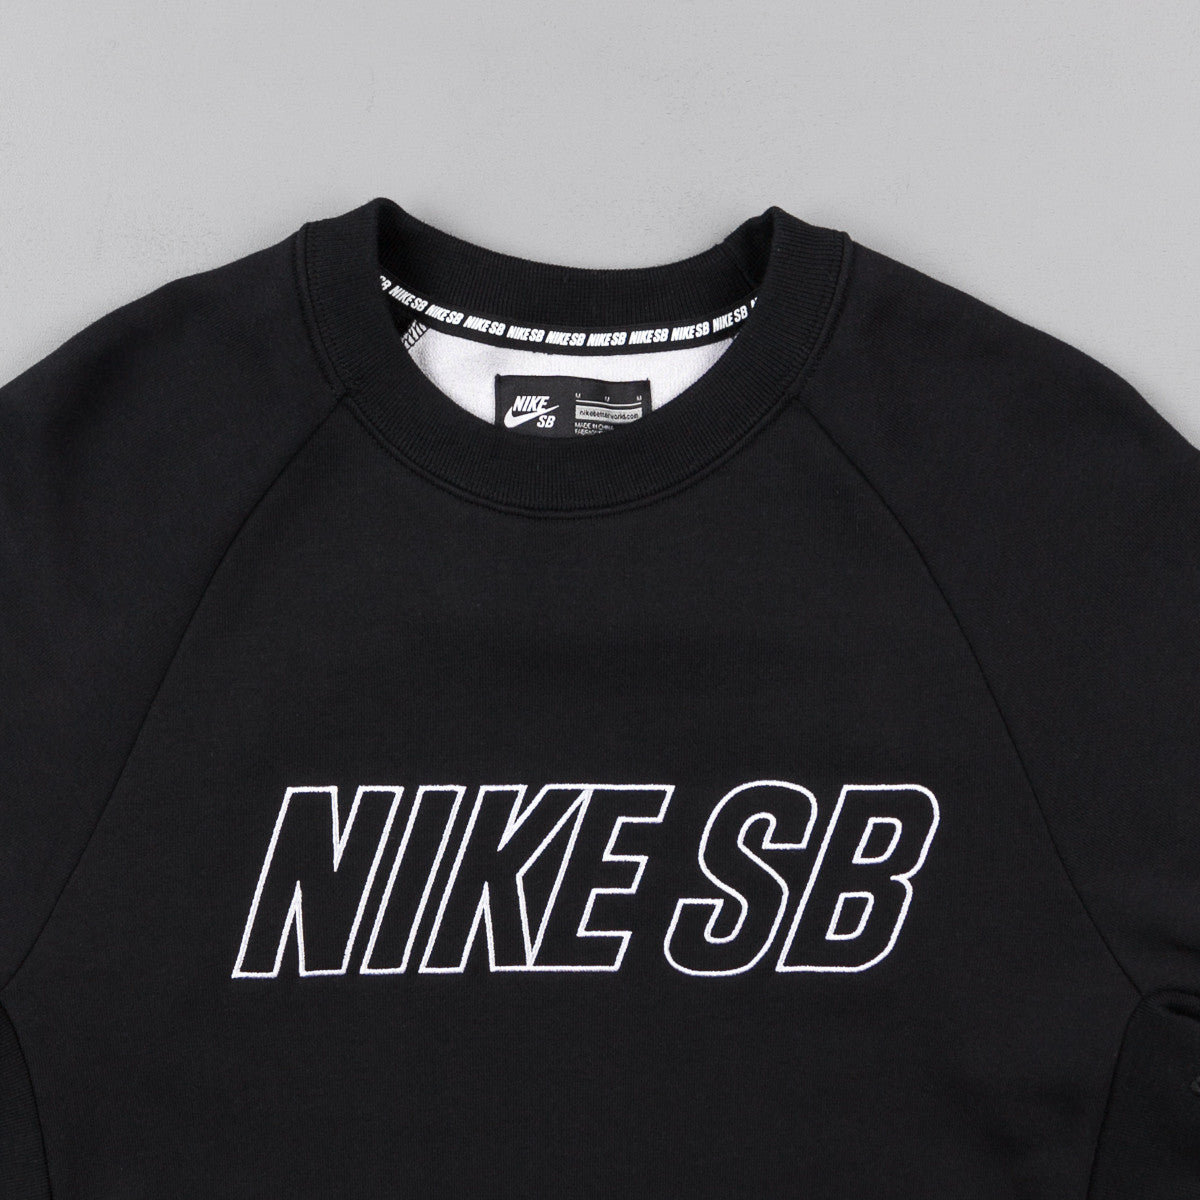 Nike SB Everett Reveal Crewneck Sweatshirt - Black / White